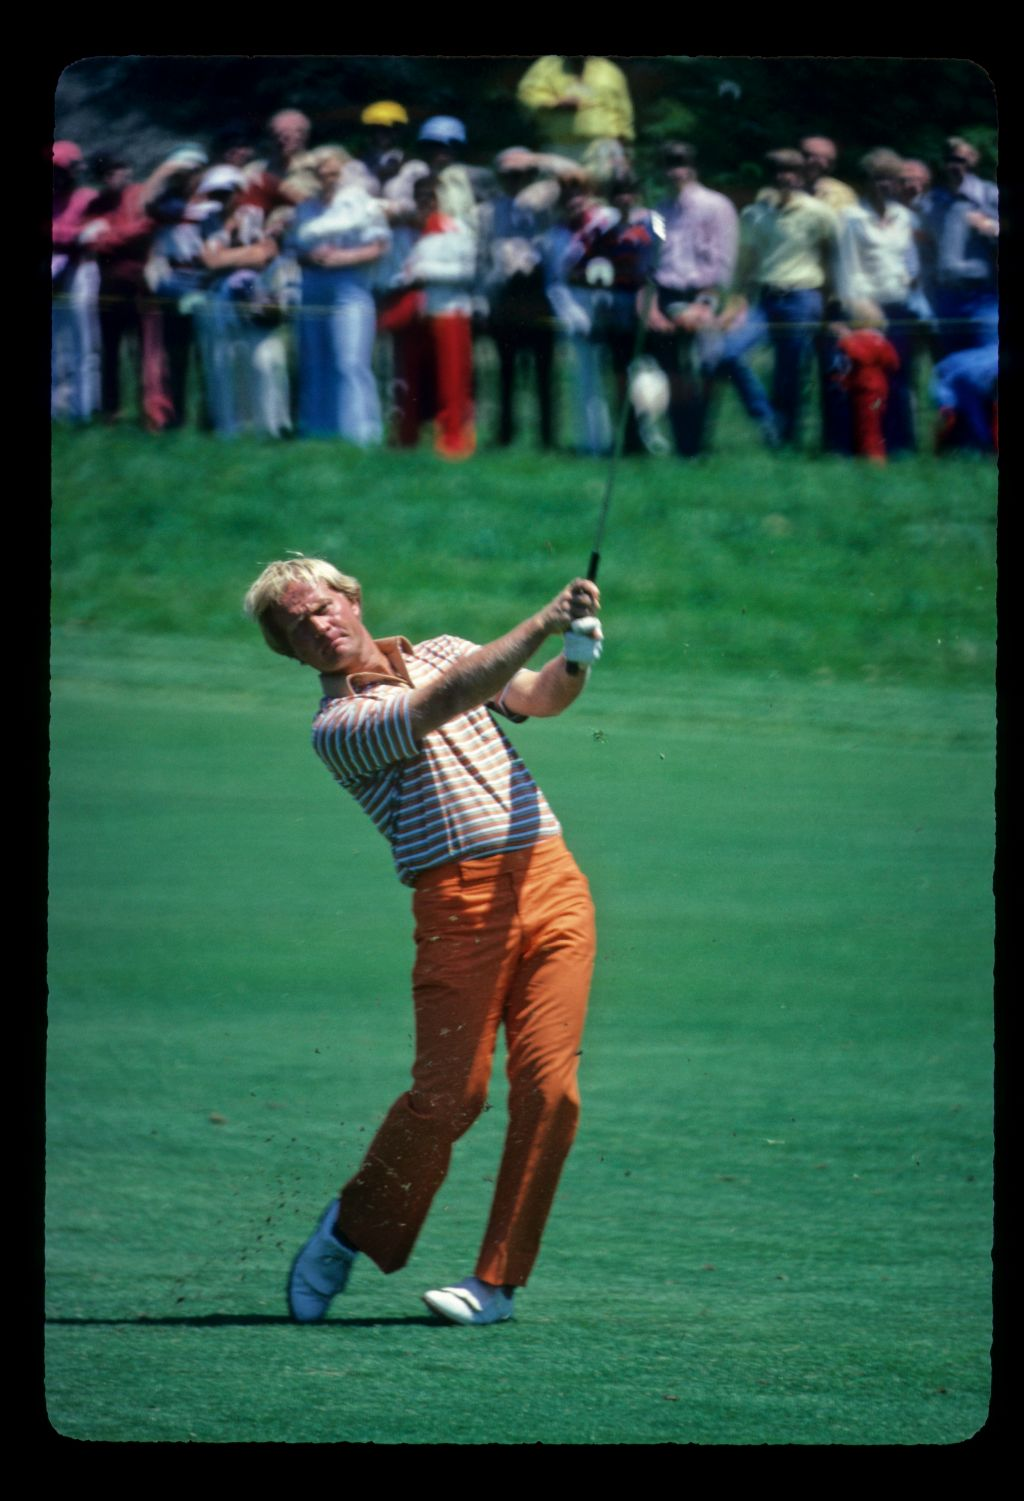 Jack Nicklaus watching his approach shot closely during the 1980 US Open